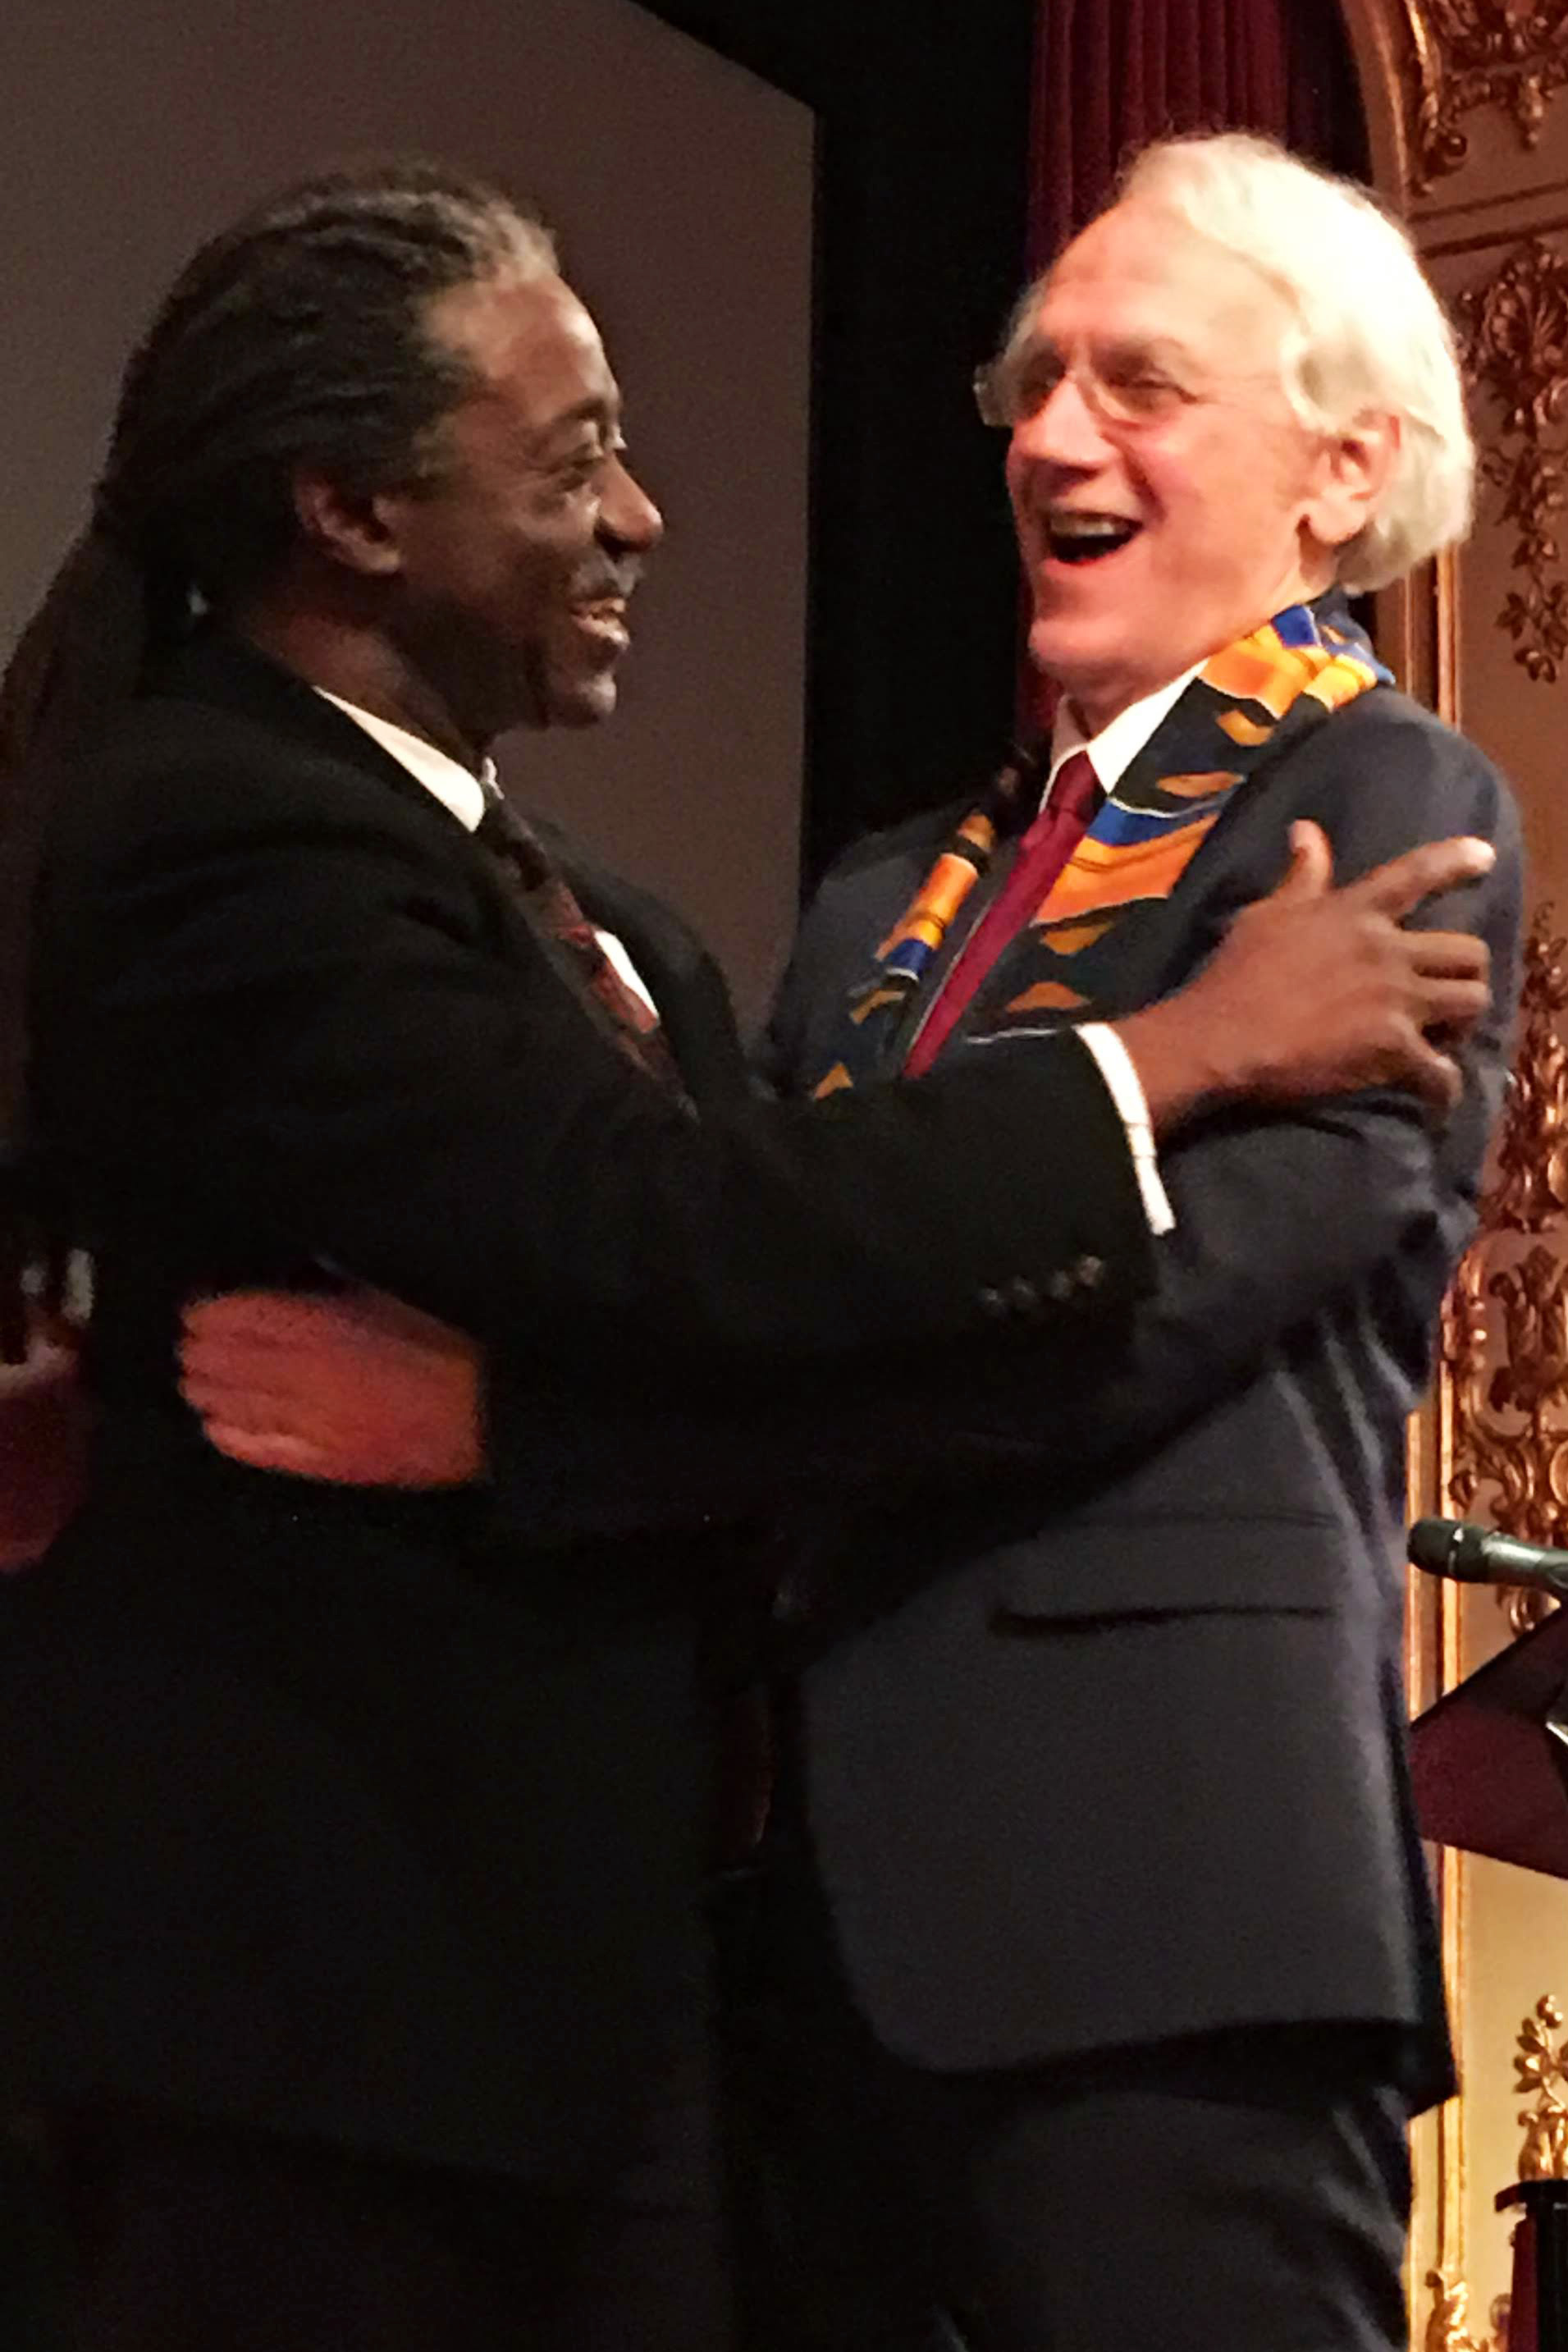 Herbert Winful and Gérard Mourou hug at at party for the 2018 Nobel Ceremony